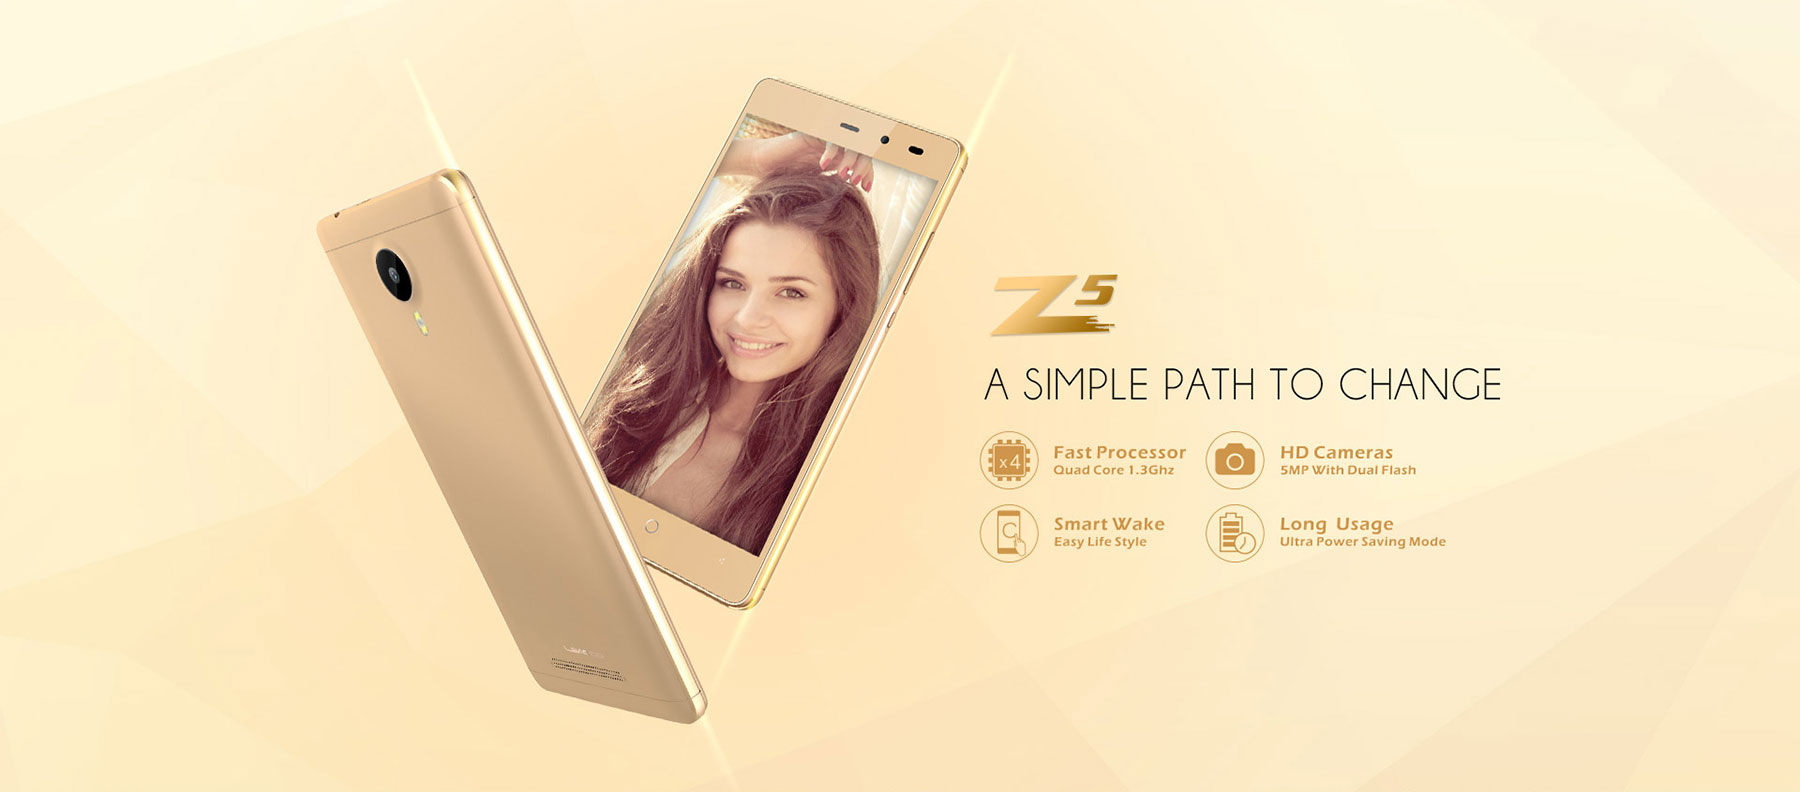 Leagoo Z5 5.0 inch Android 6.0 3G Smartphone MTK6580 Quad Core 1.3GHz 1GB RAM 8GB ROM Dual Cameras Bluetooth 4.1 Cameras GPS